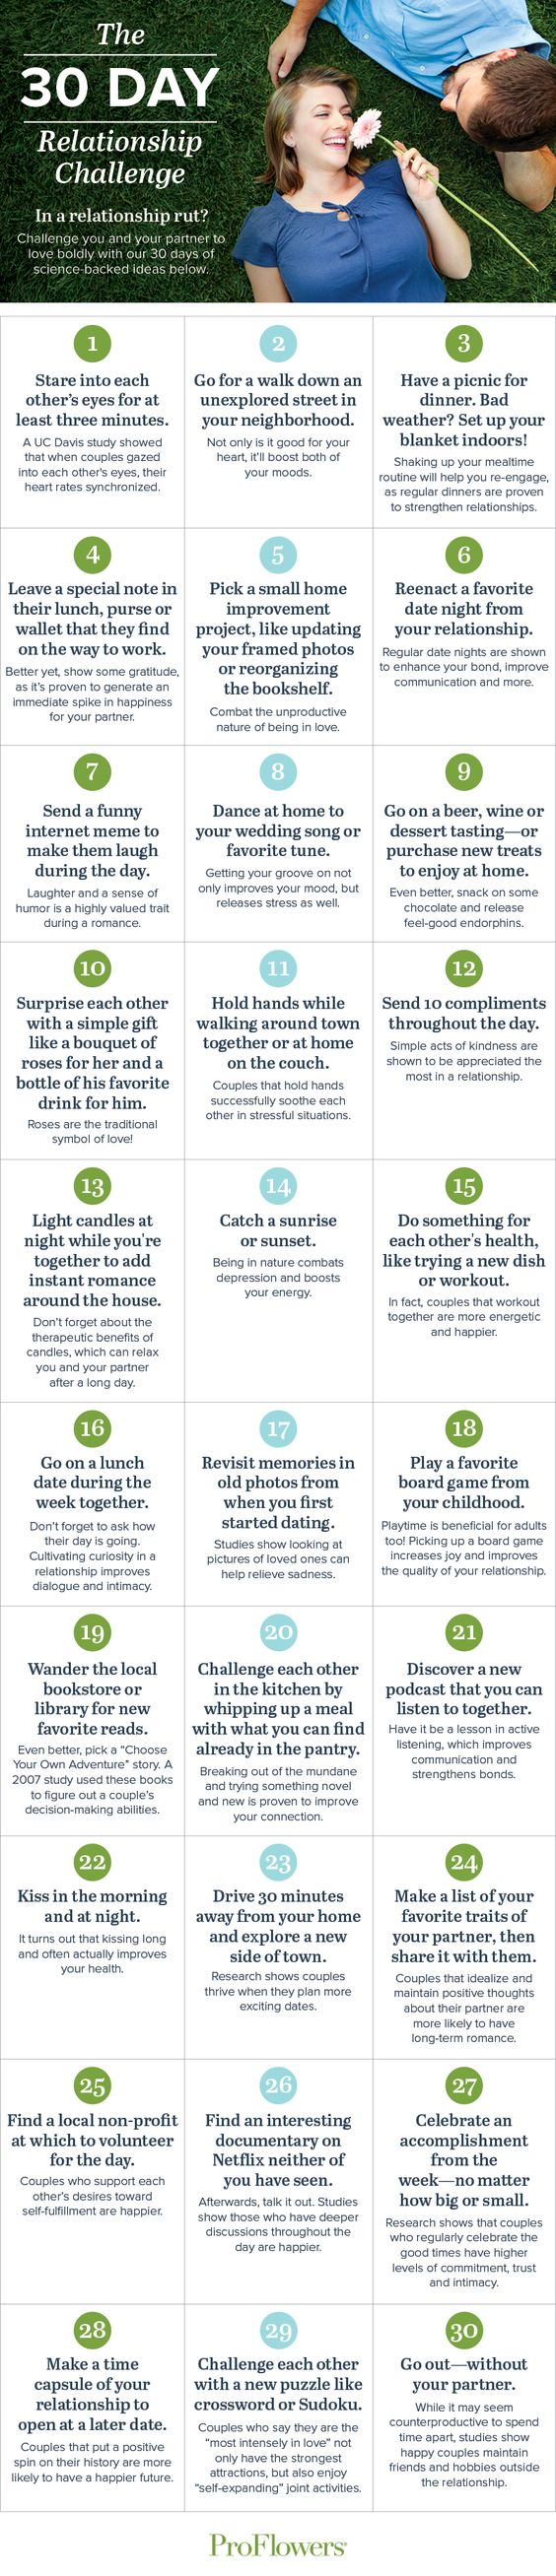 8 Awesome Free Challenges That Will Improve All Areas Of Your Life. I love how this post includes so many aspects of life! The fitness and health challenges are great, but I really like how there is a relationship, money, and parenting challenge included. Definitely pinning this for later!